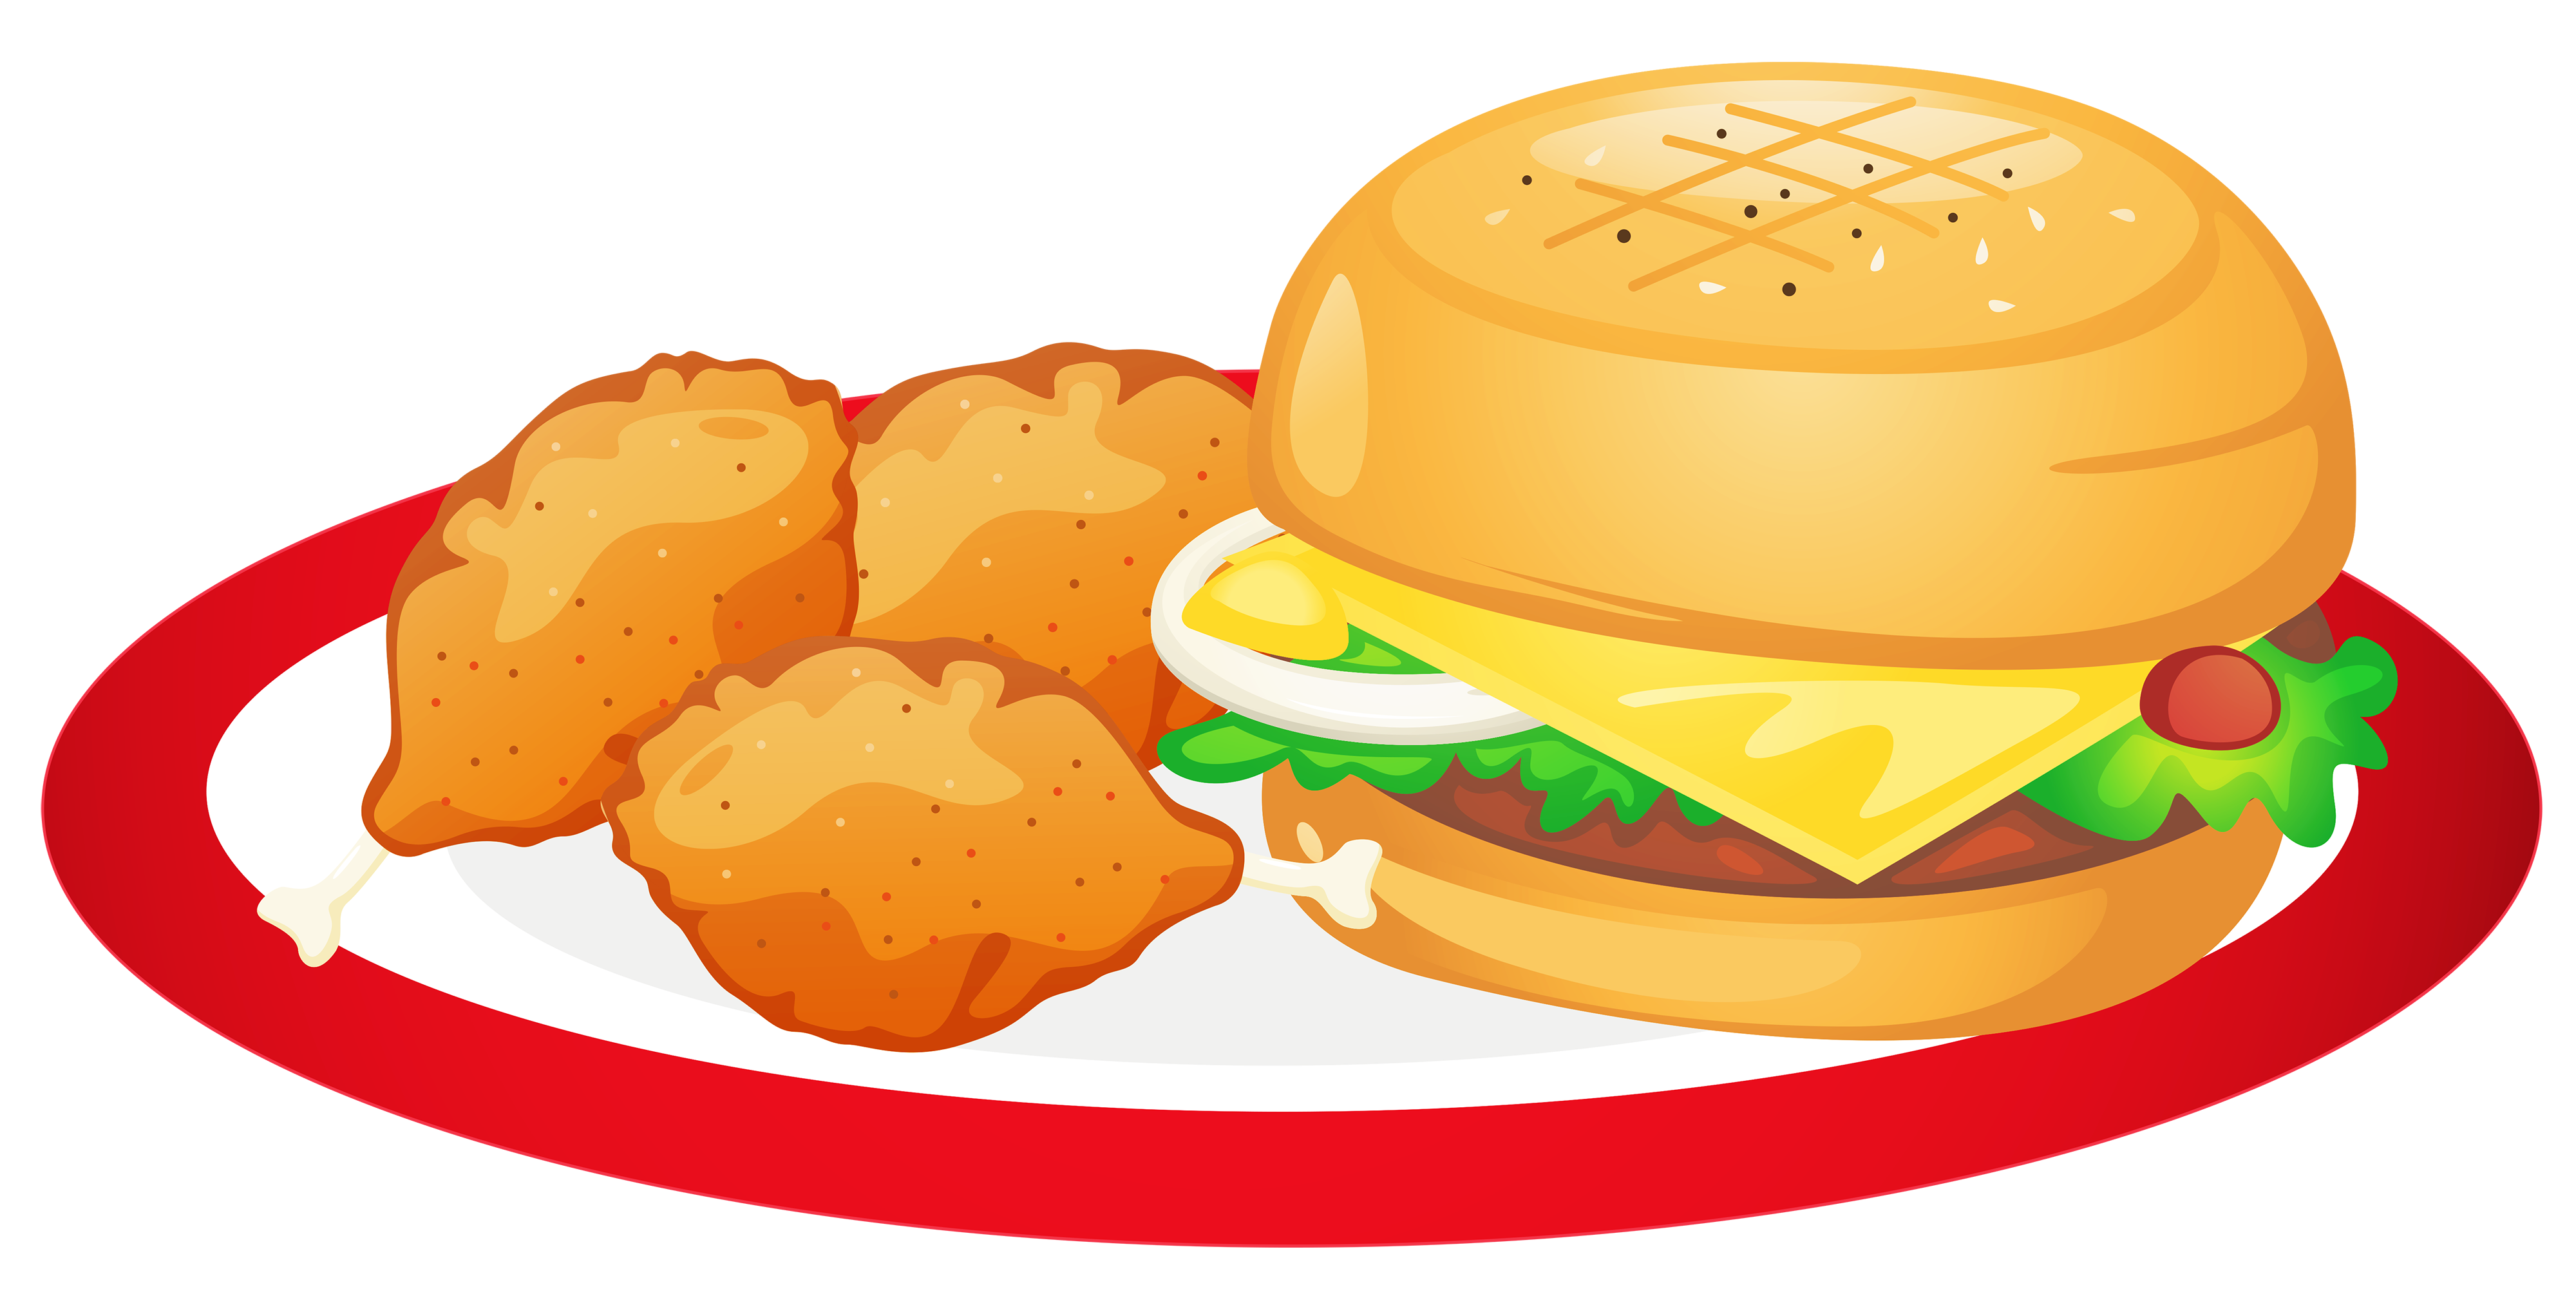 Food Clipart Transparent Background